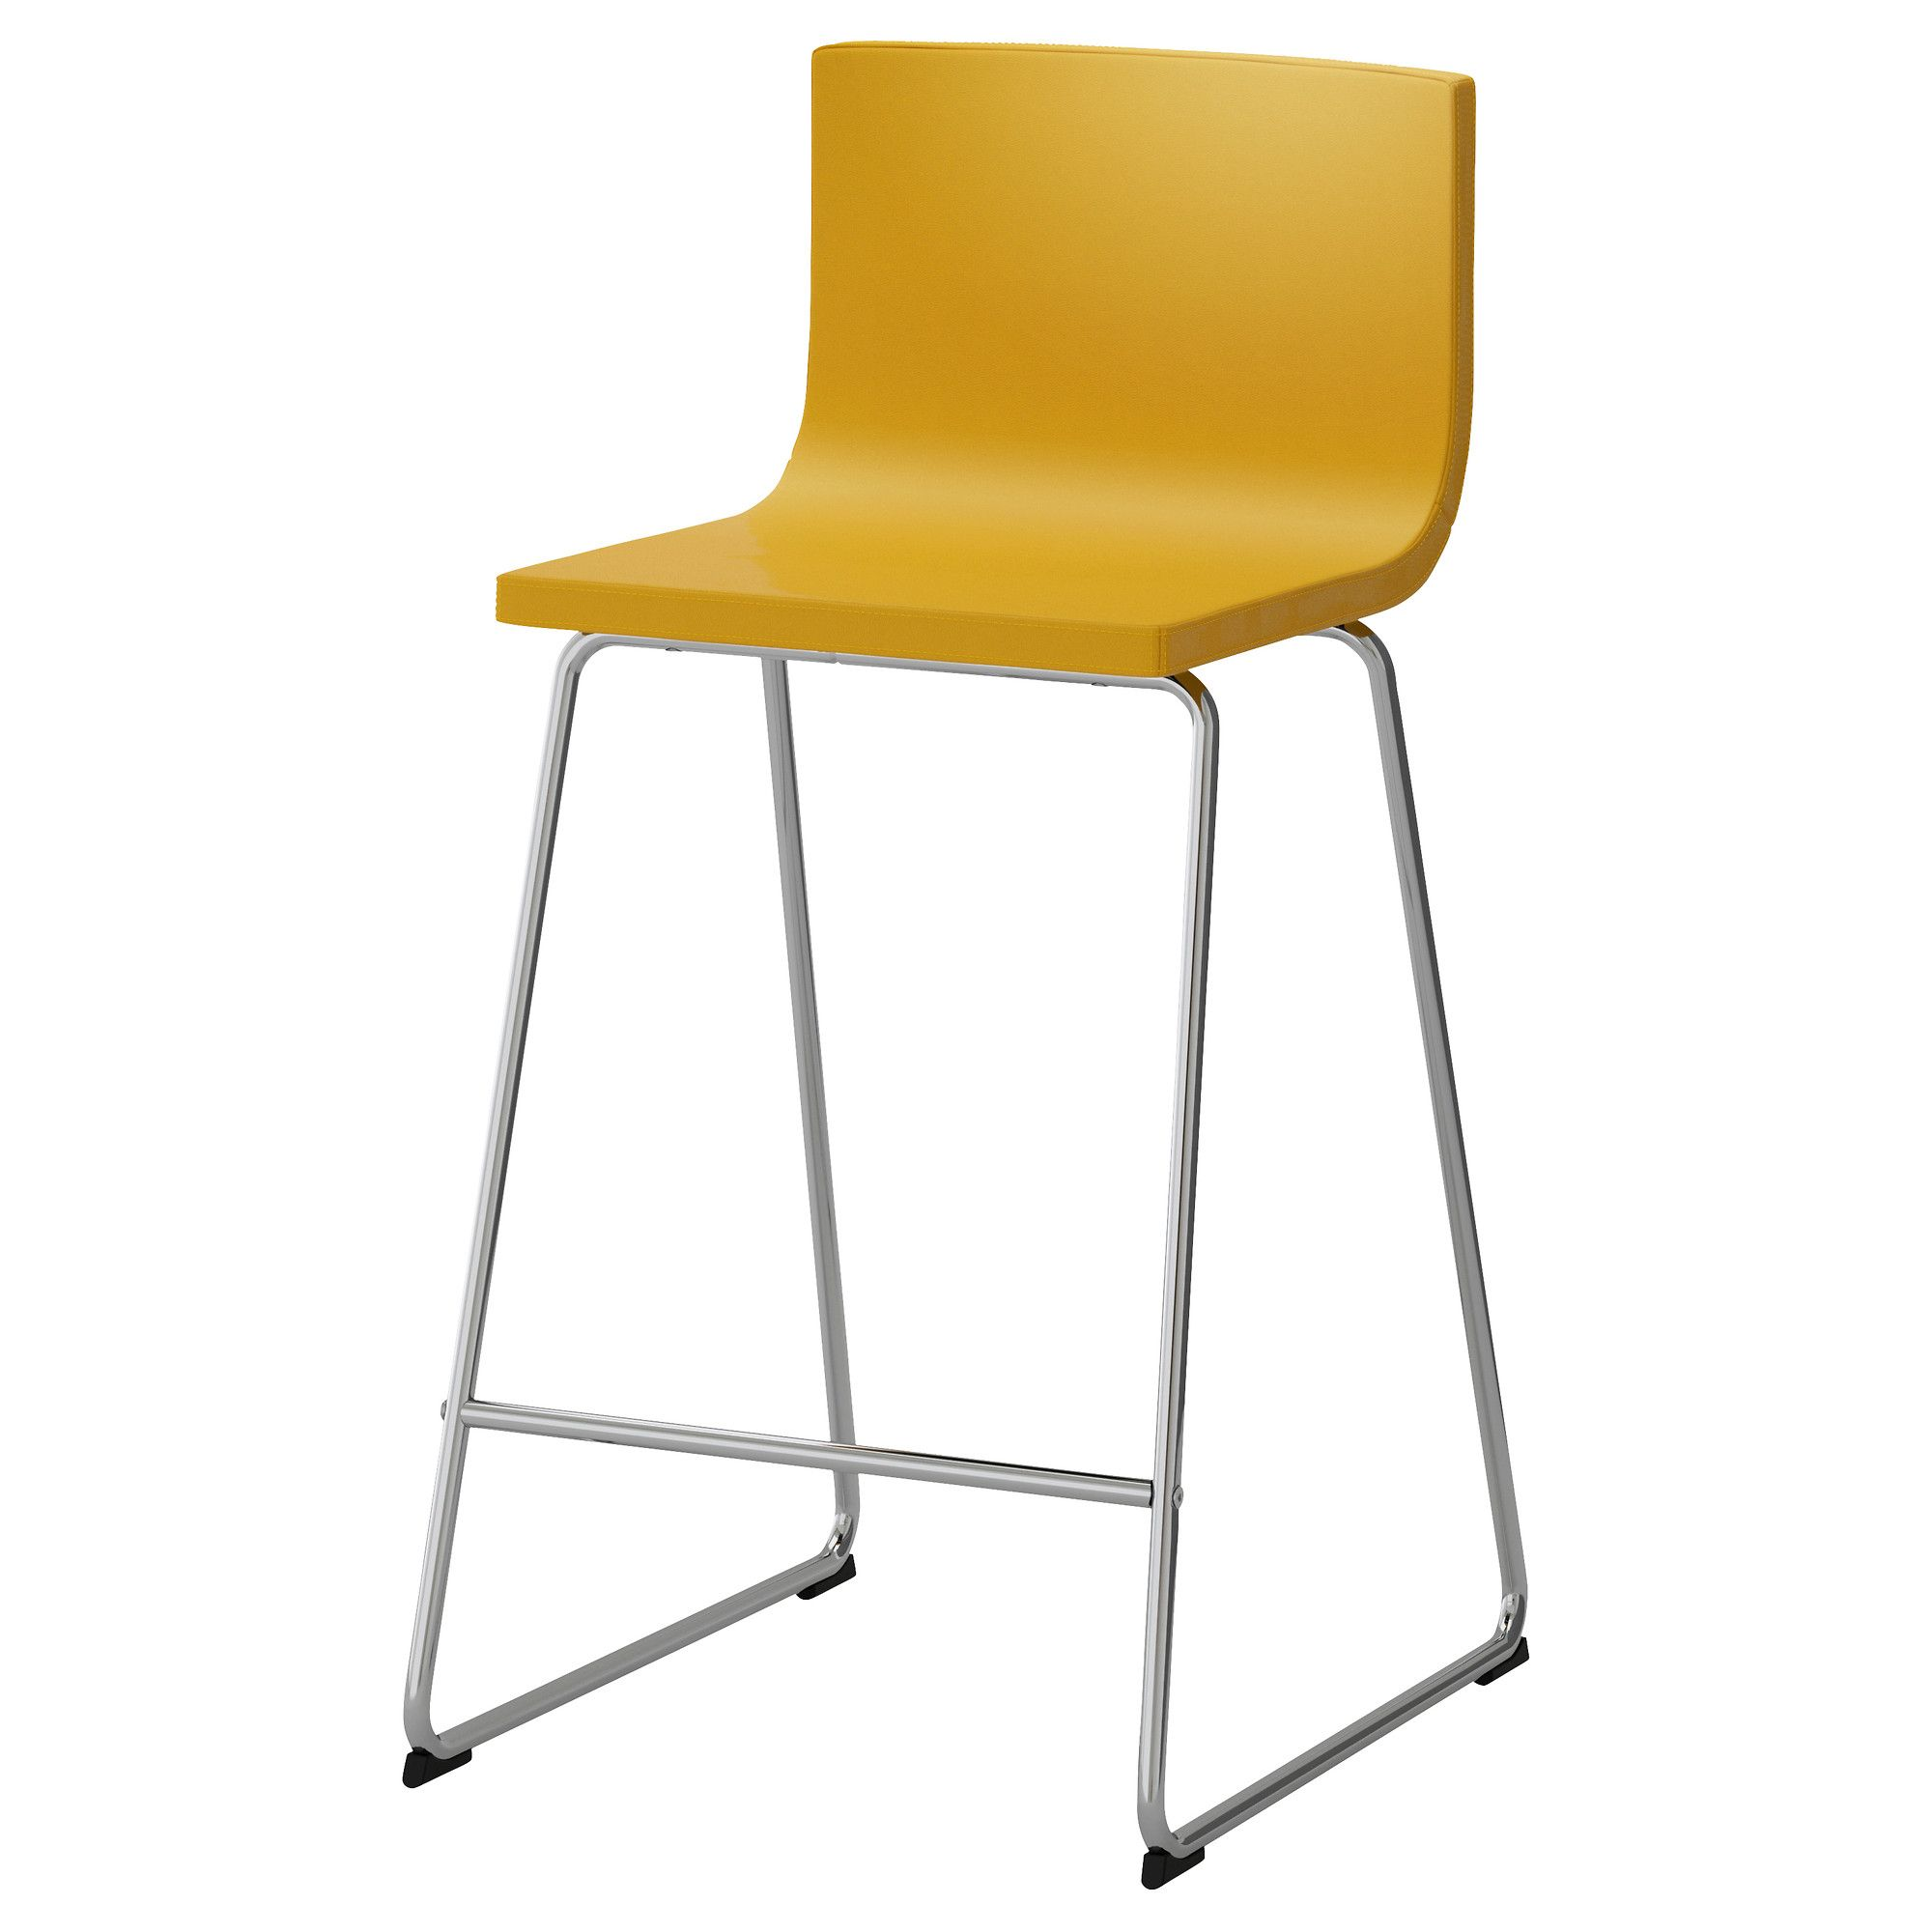 Ikea Tabouret De Comptoir Ikea Bernhard Bar Stool With Backrest You Sit